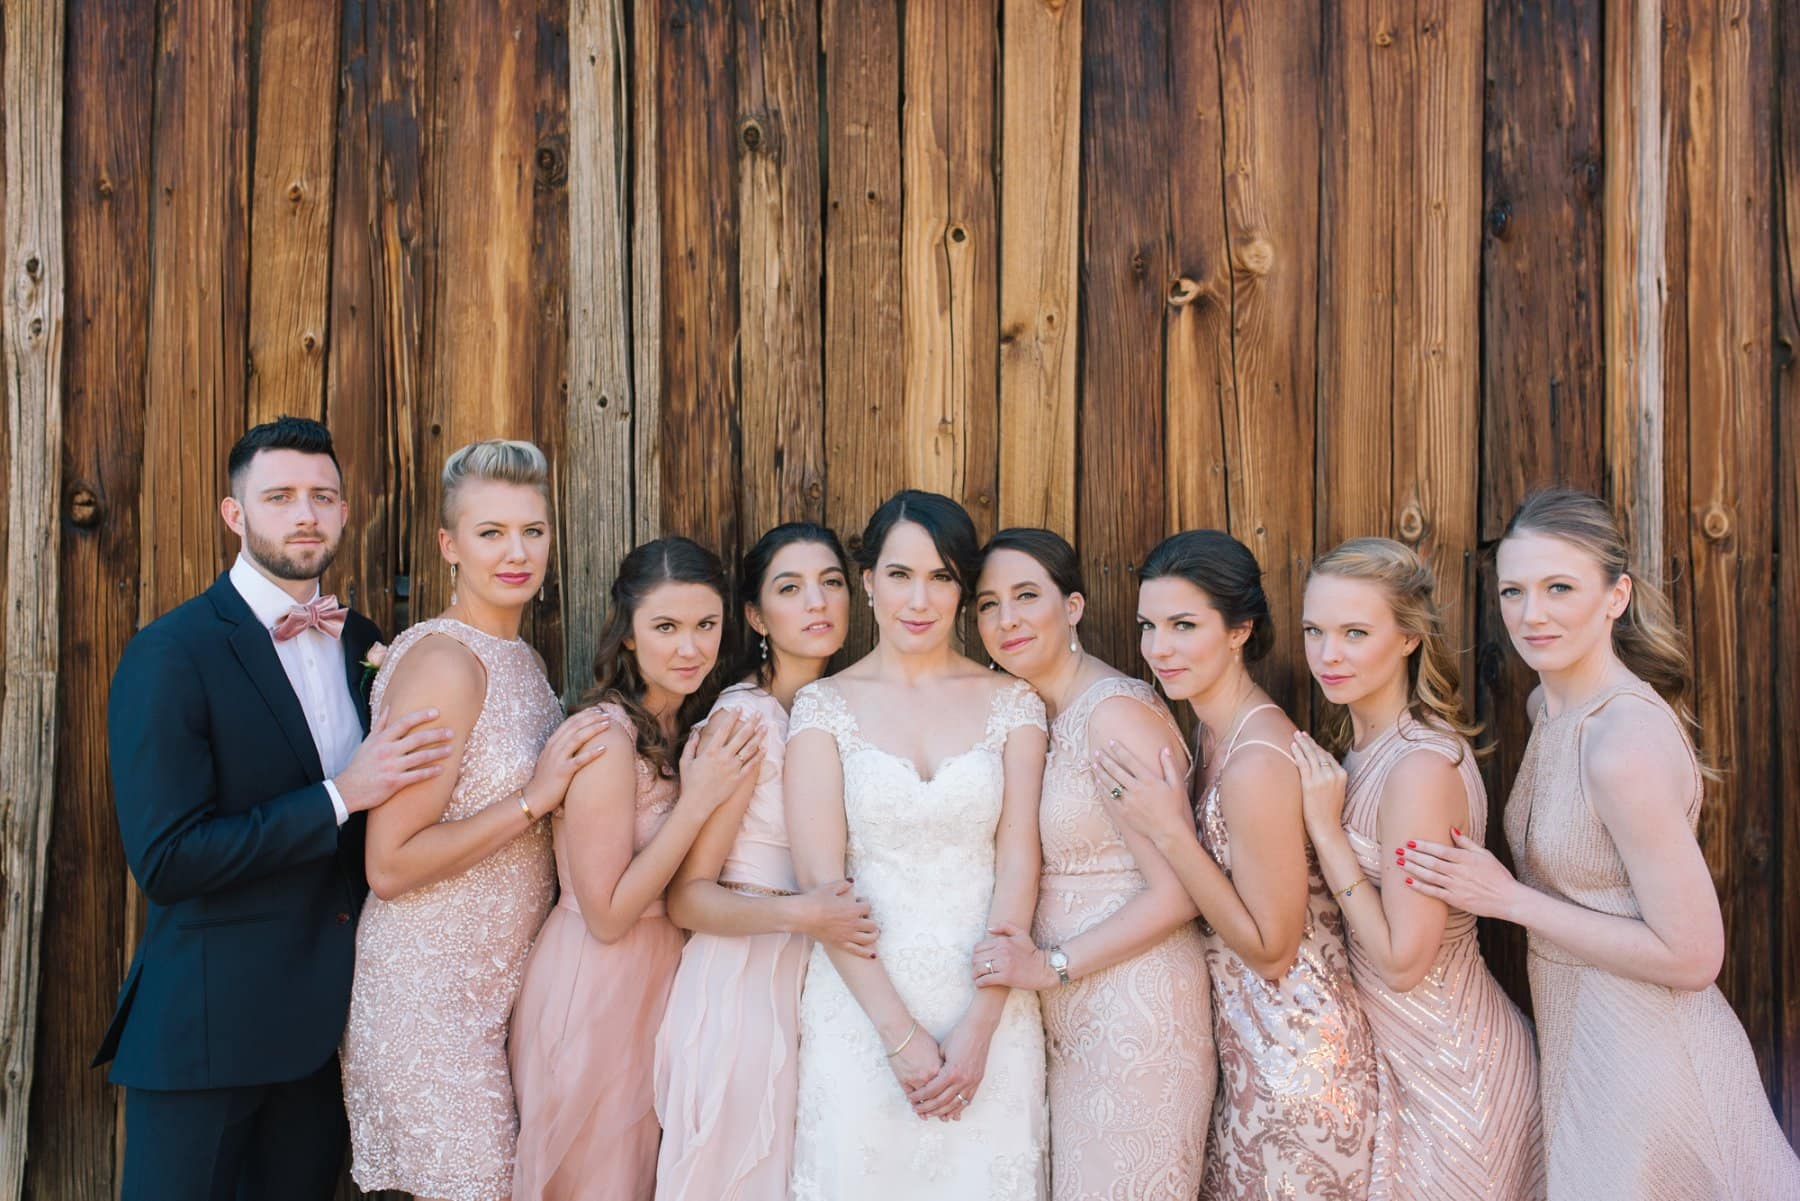 Desert Foothills wedding party pink bridesmaids dresses and bridesman